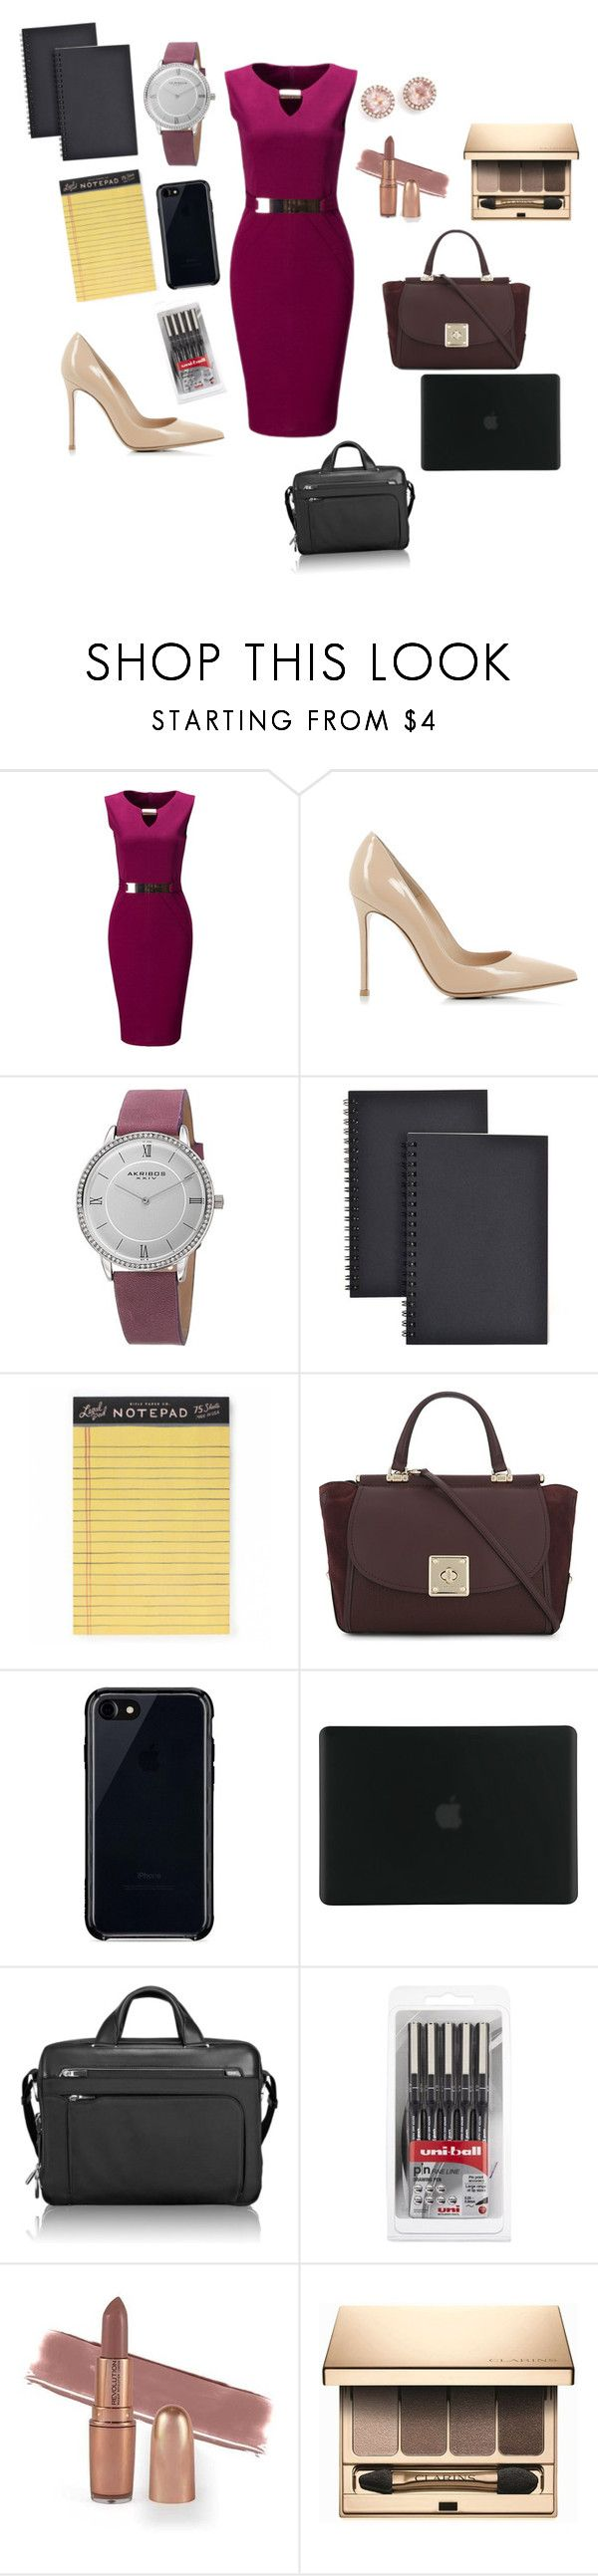 """Business"" by shayshayv ❤ liked on Polyvore featuring WithChic, Gianvito Rossi, Akribos XXIV, Universal, Rifle Paper Co, Coach, Belkin, Tucano, Tumi and Clarins"